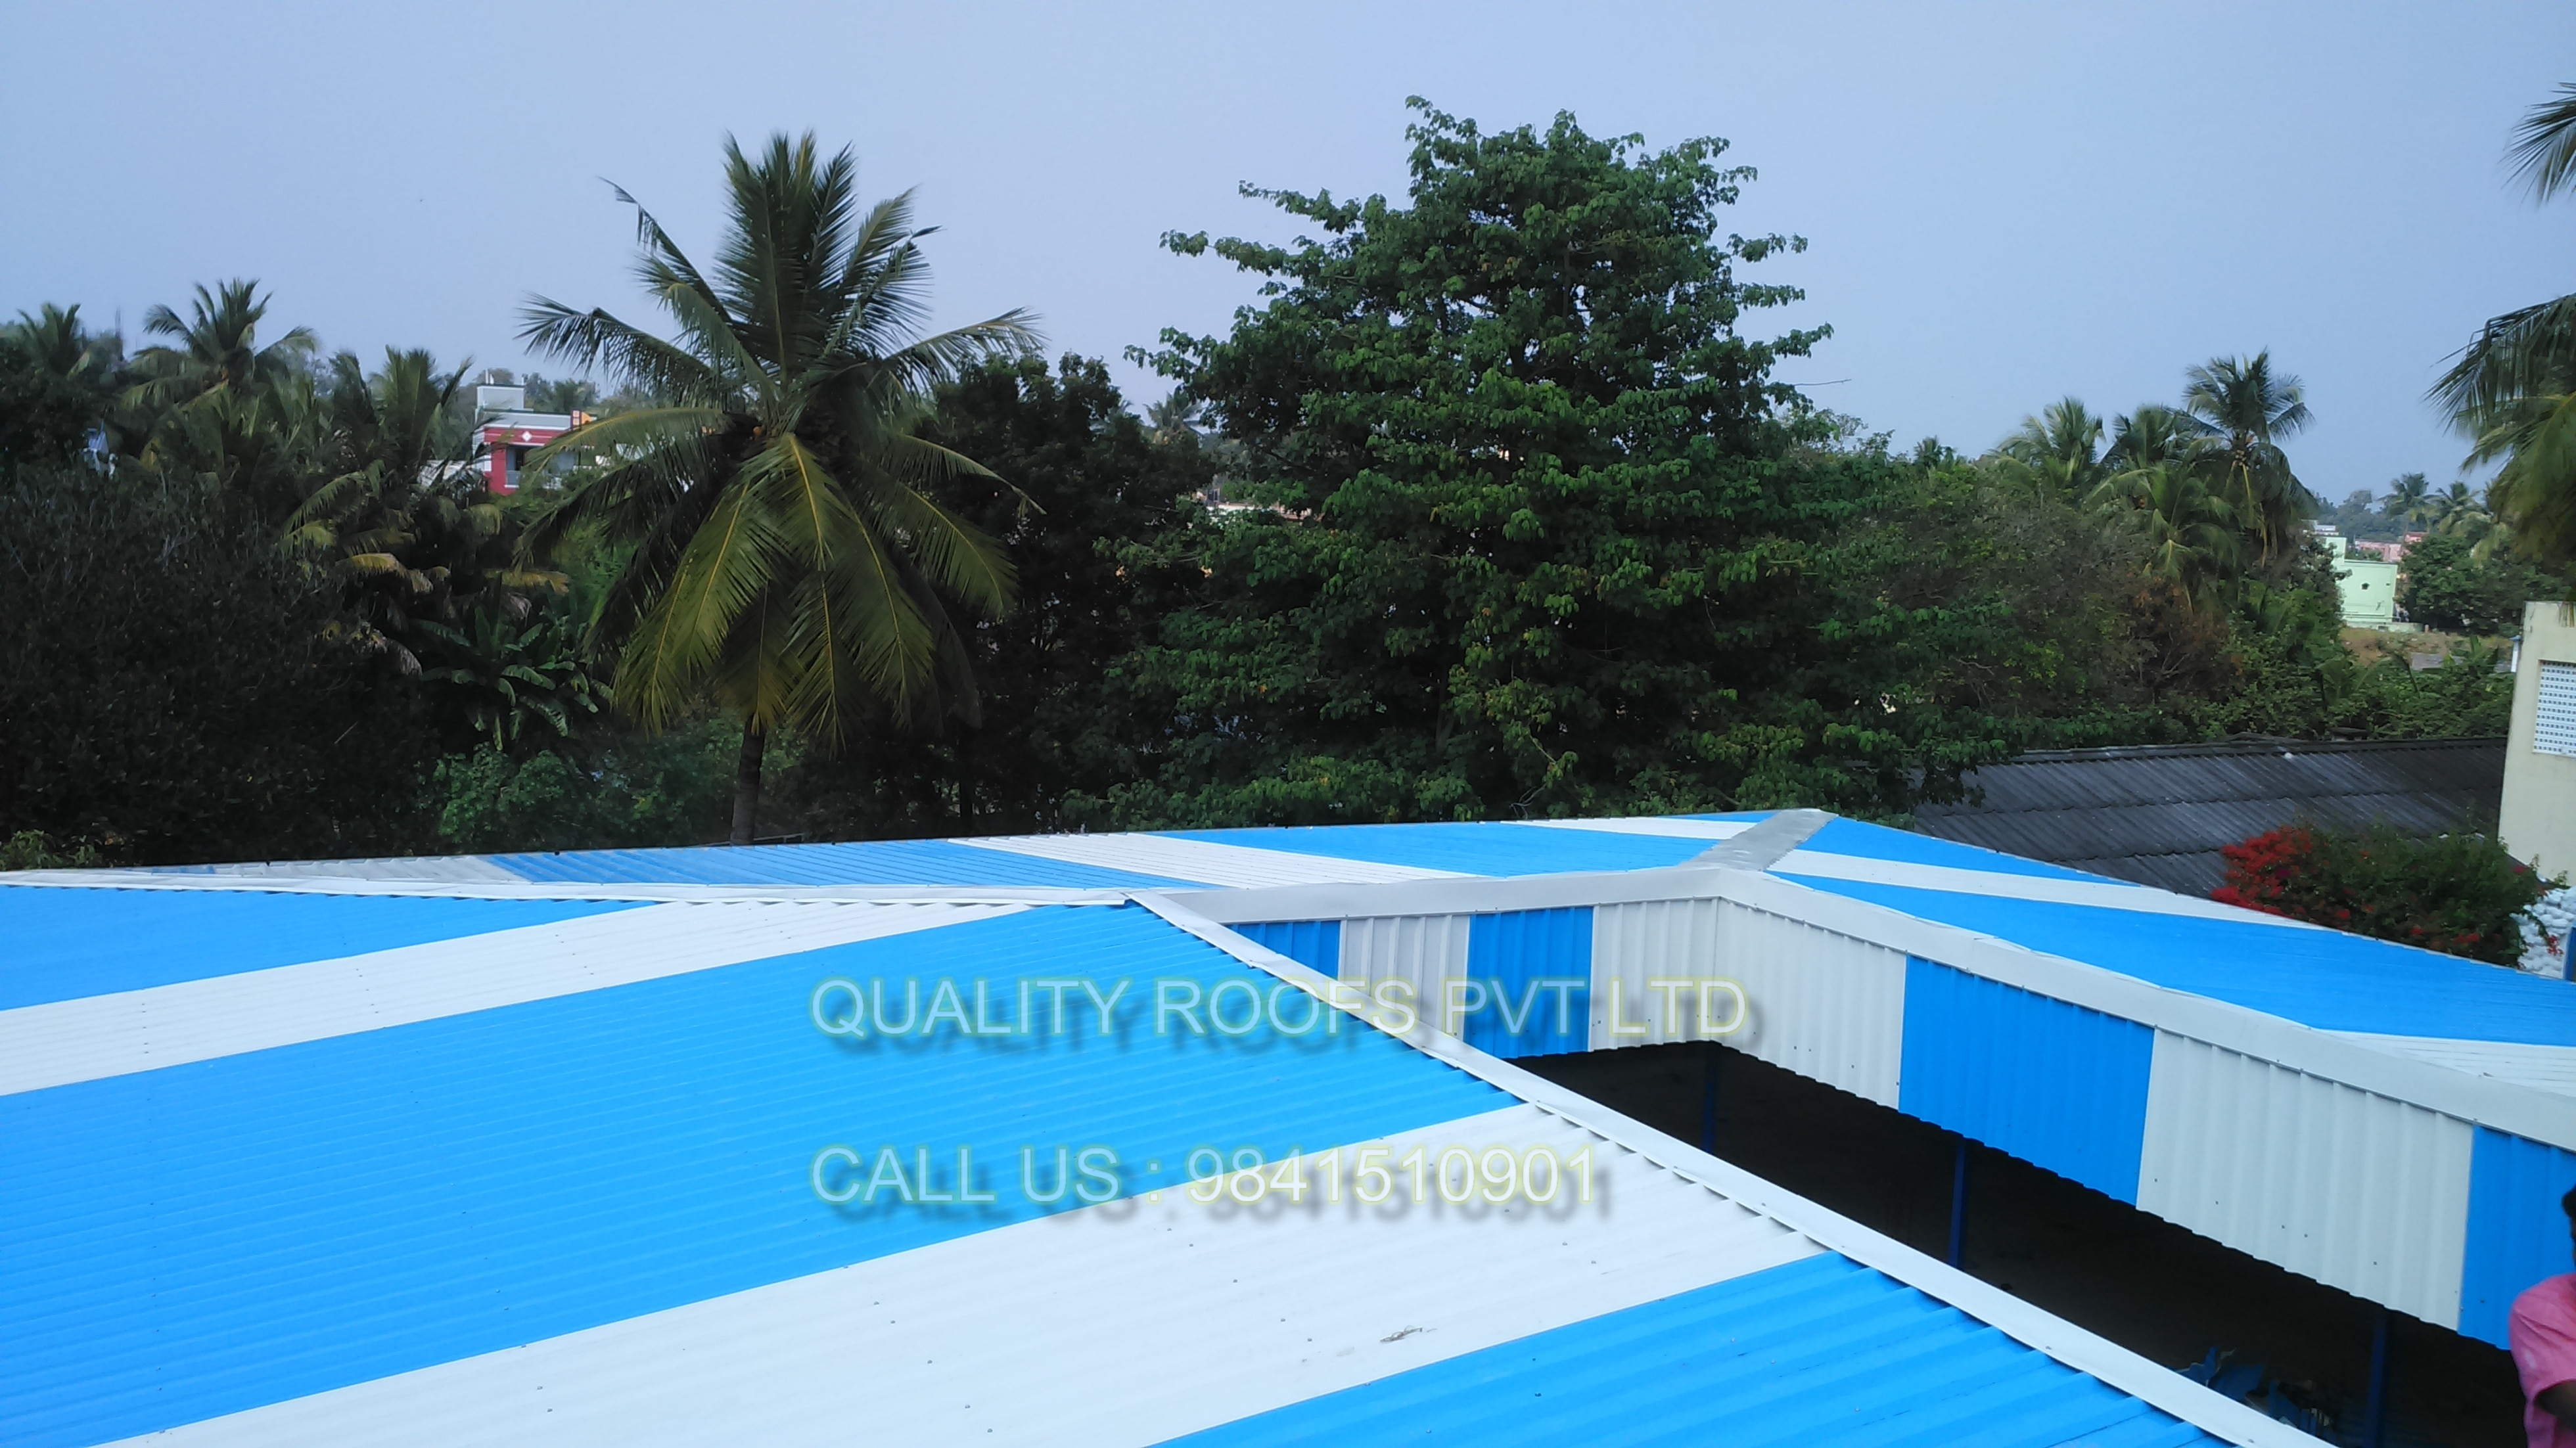 Metal Roofing Contractors In Chennai          We are the leading Metal Roofing Contractors In Chennai. The offered sheds are manufactured using finest quality material that is sourced from reliable vendors of market. These sheds are widely acknowledged for their longer functional life and weather resistance.  can be provide with color finishes according to customer requirements. we are the best Roofing Contractors Chennai. we undertake all kinds of Roofing Works In Chennai.